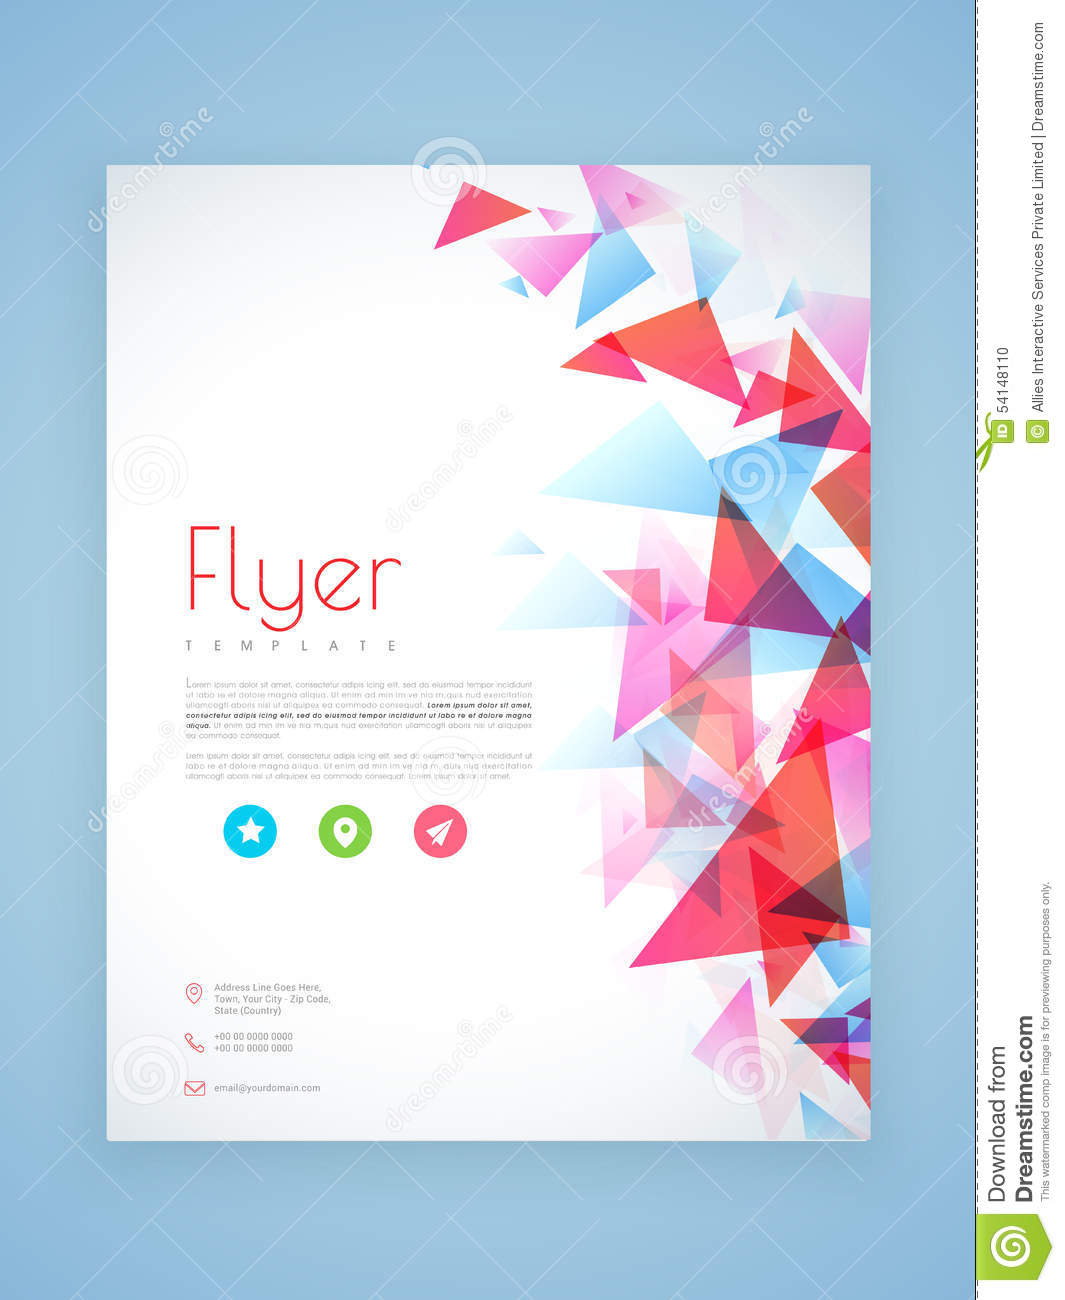 flyer brochure templates - professional flyer template or brochure design stock